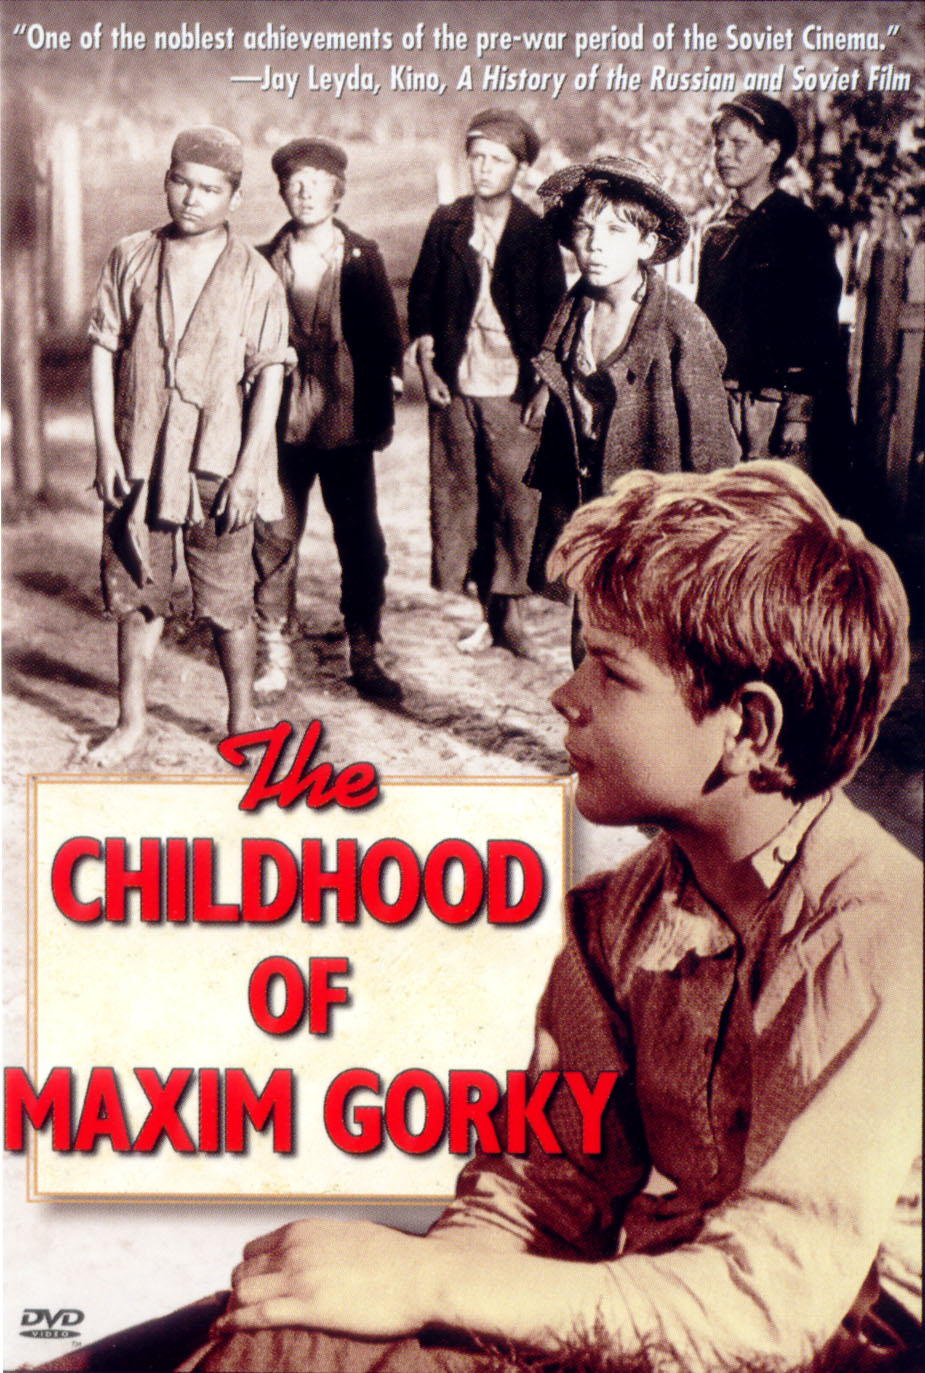 The Childhood of Maxim Gorky (1938)